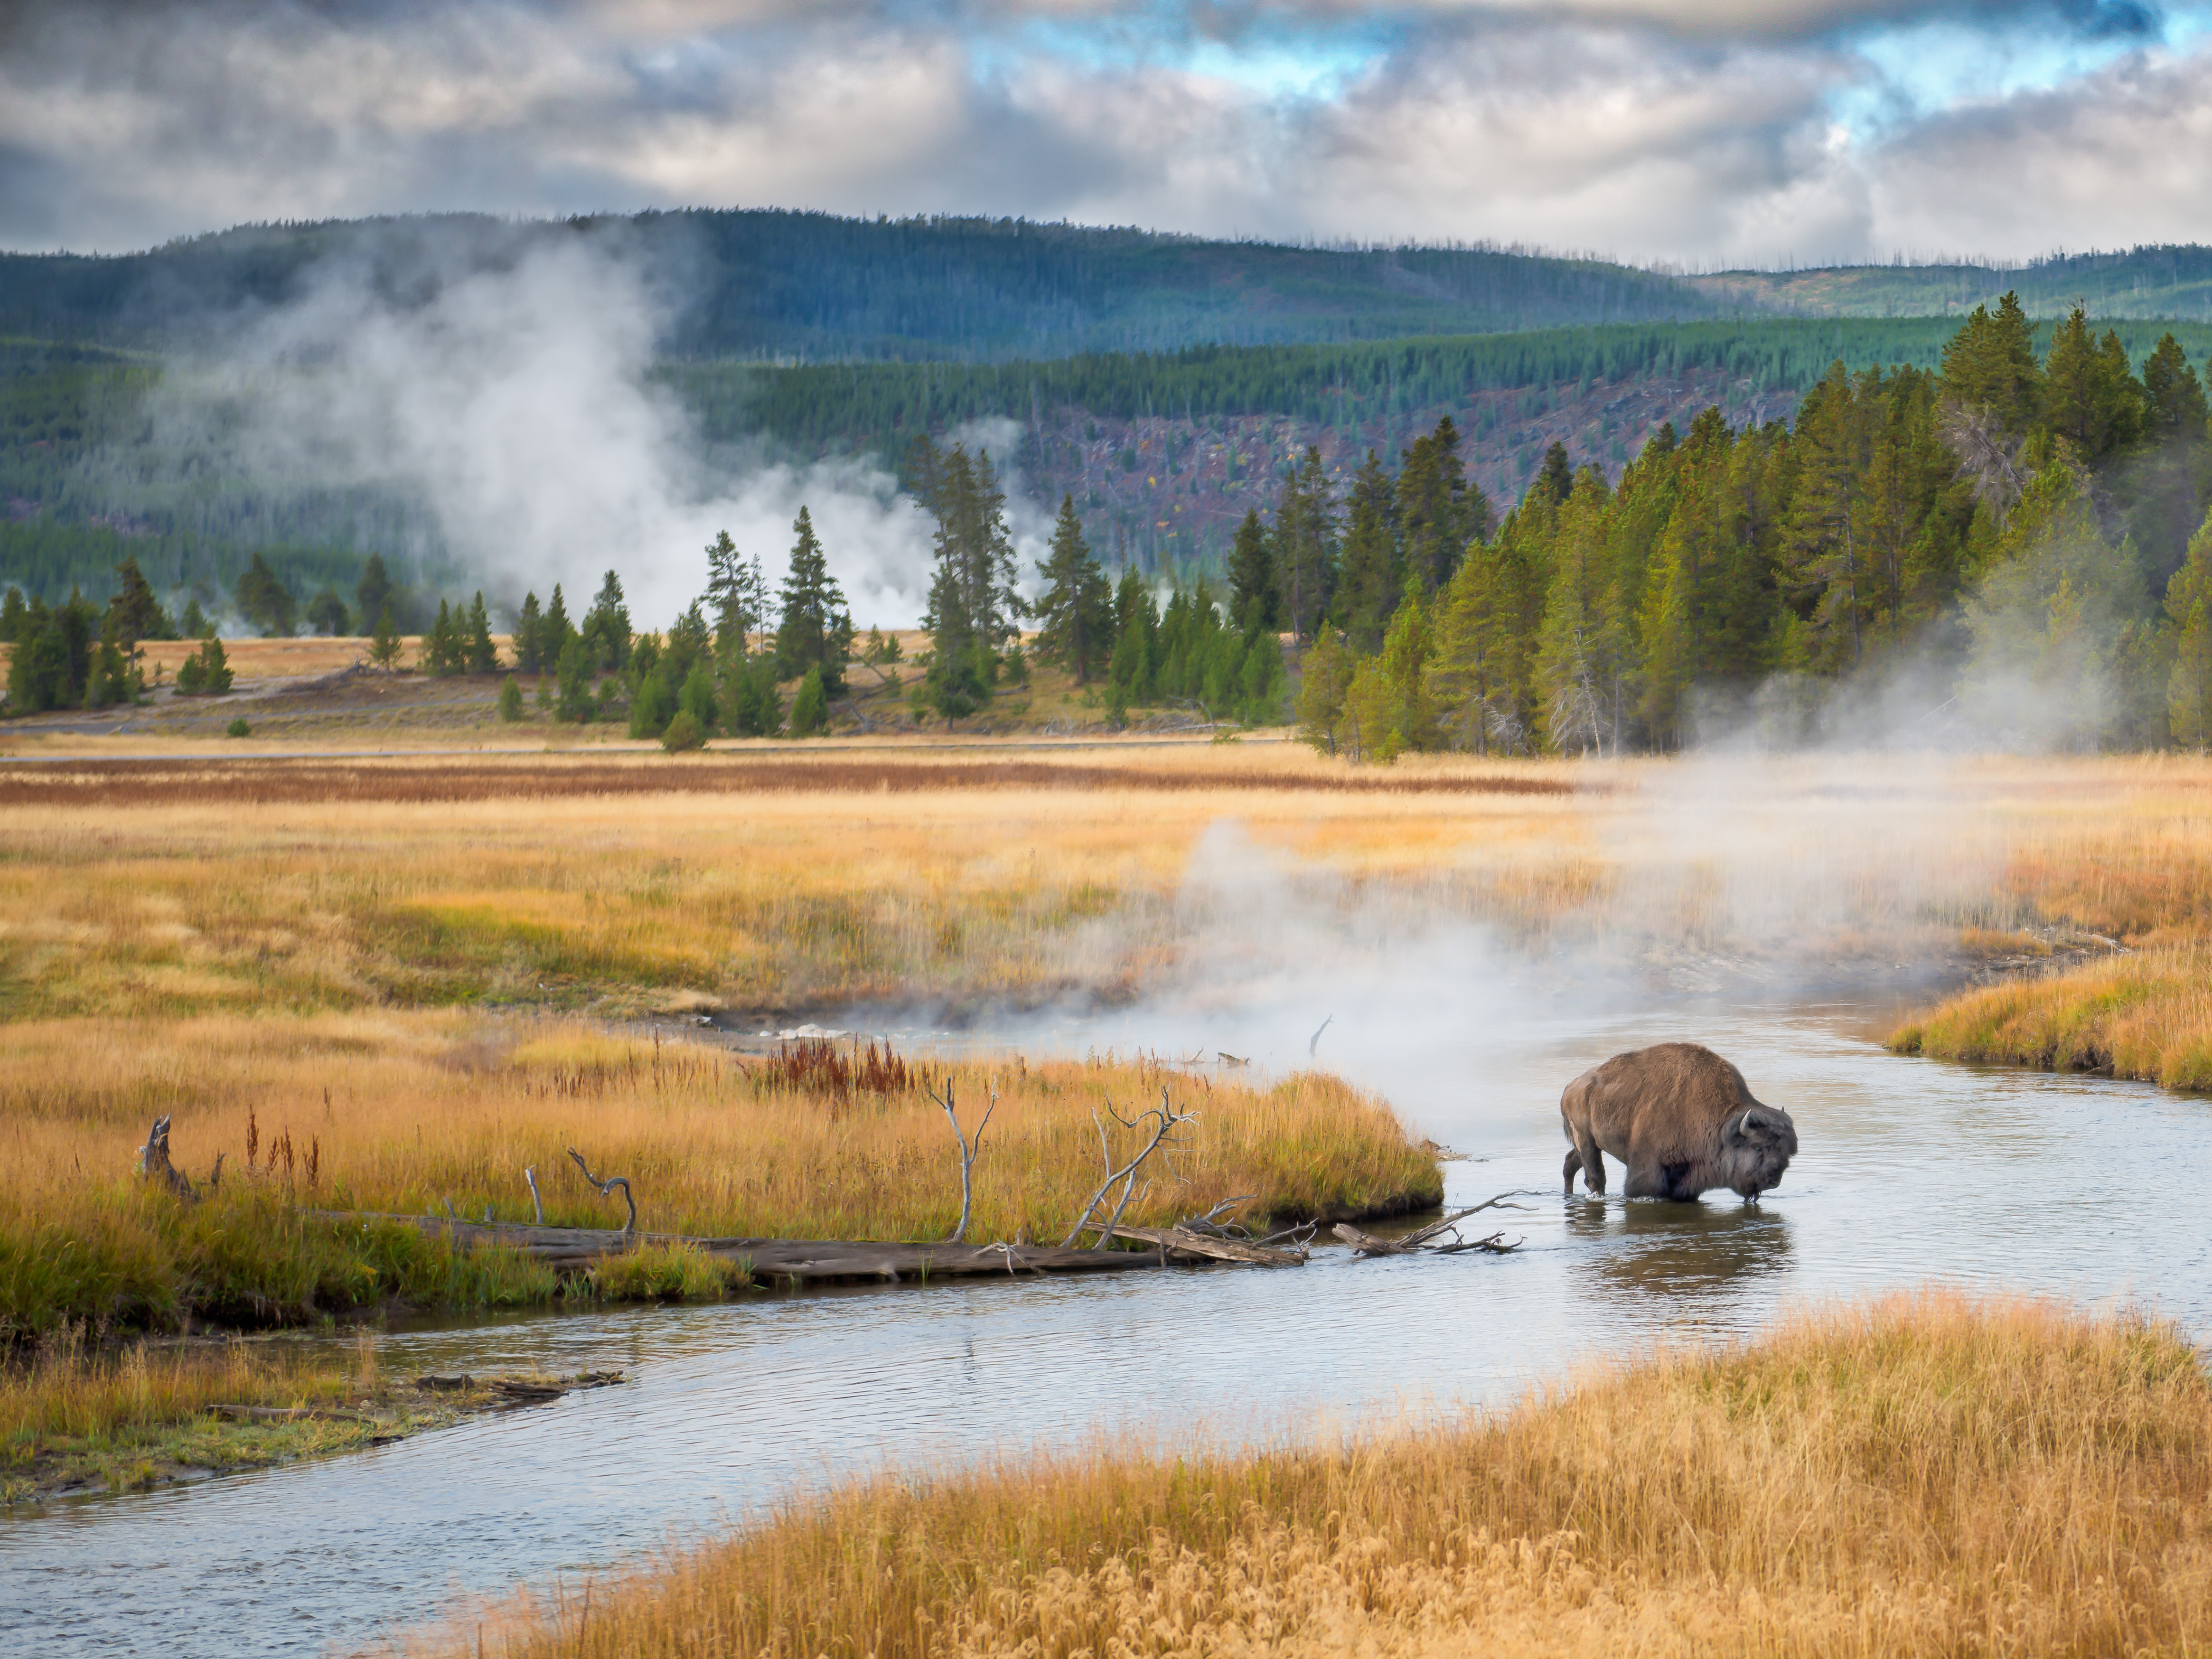 Bison and steam vents in Yellowstone.